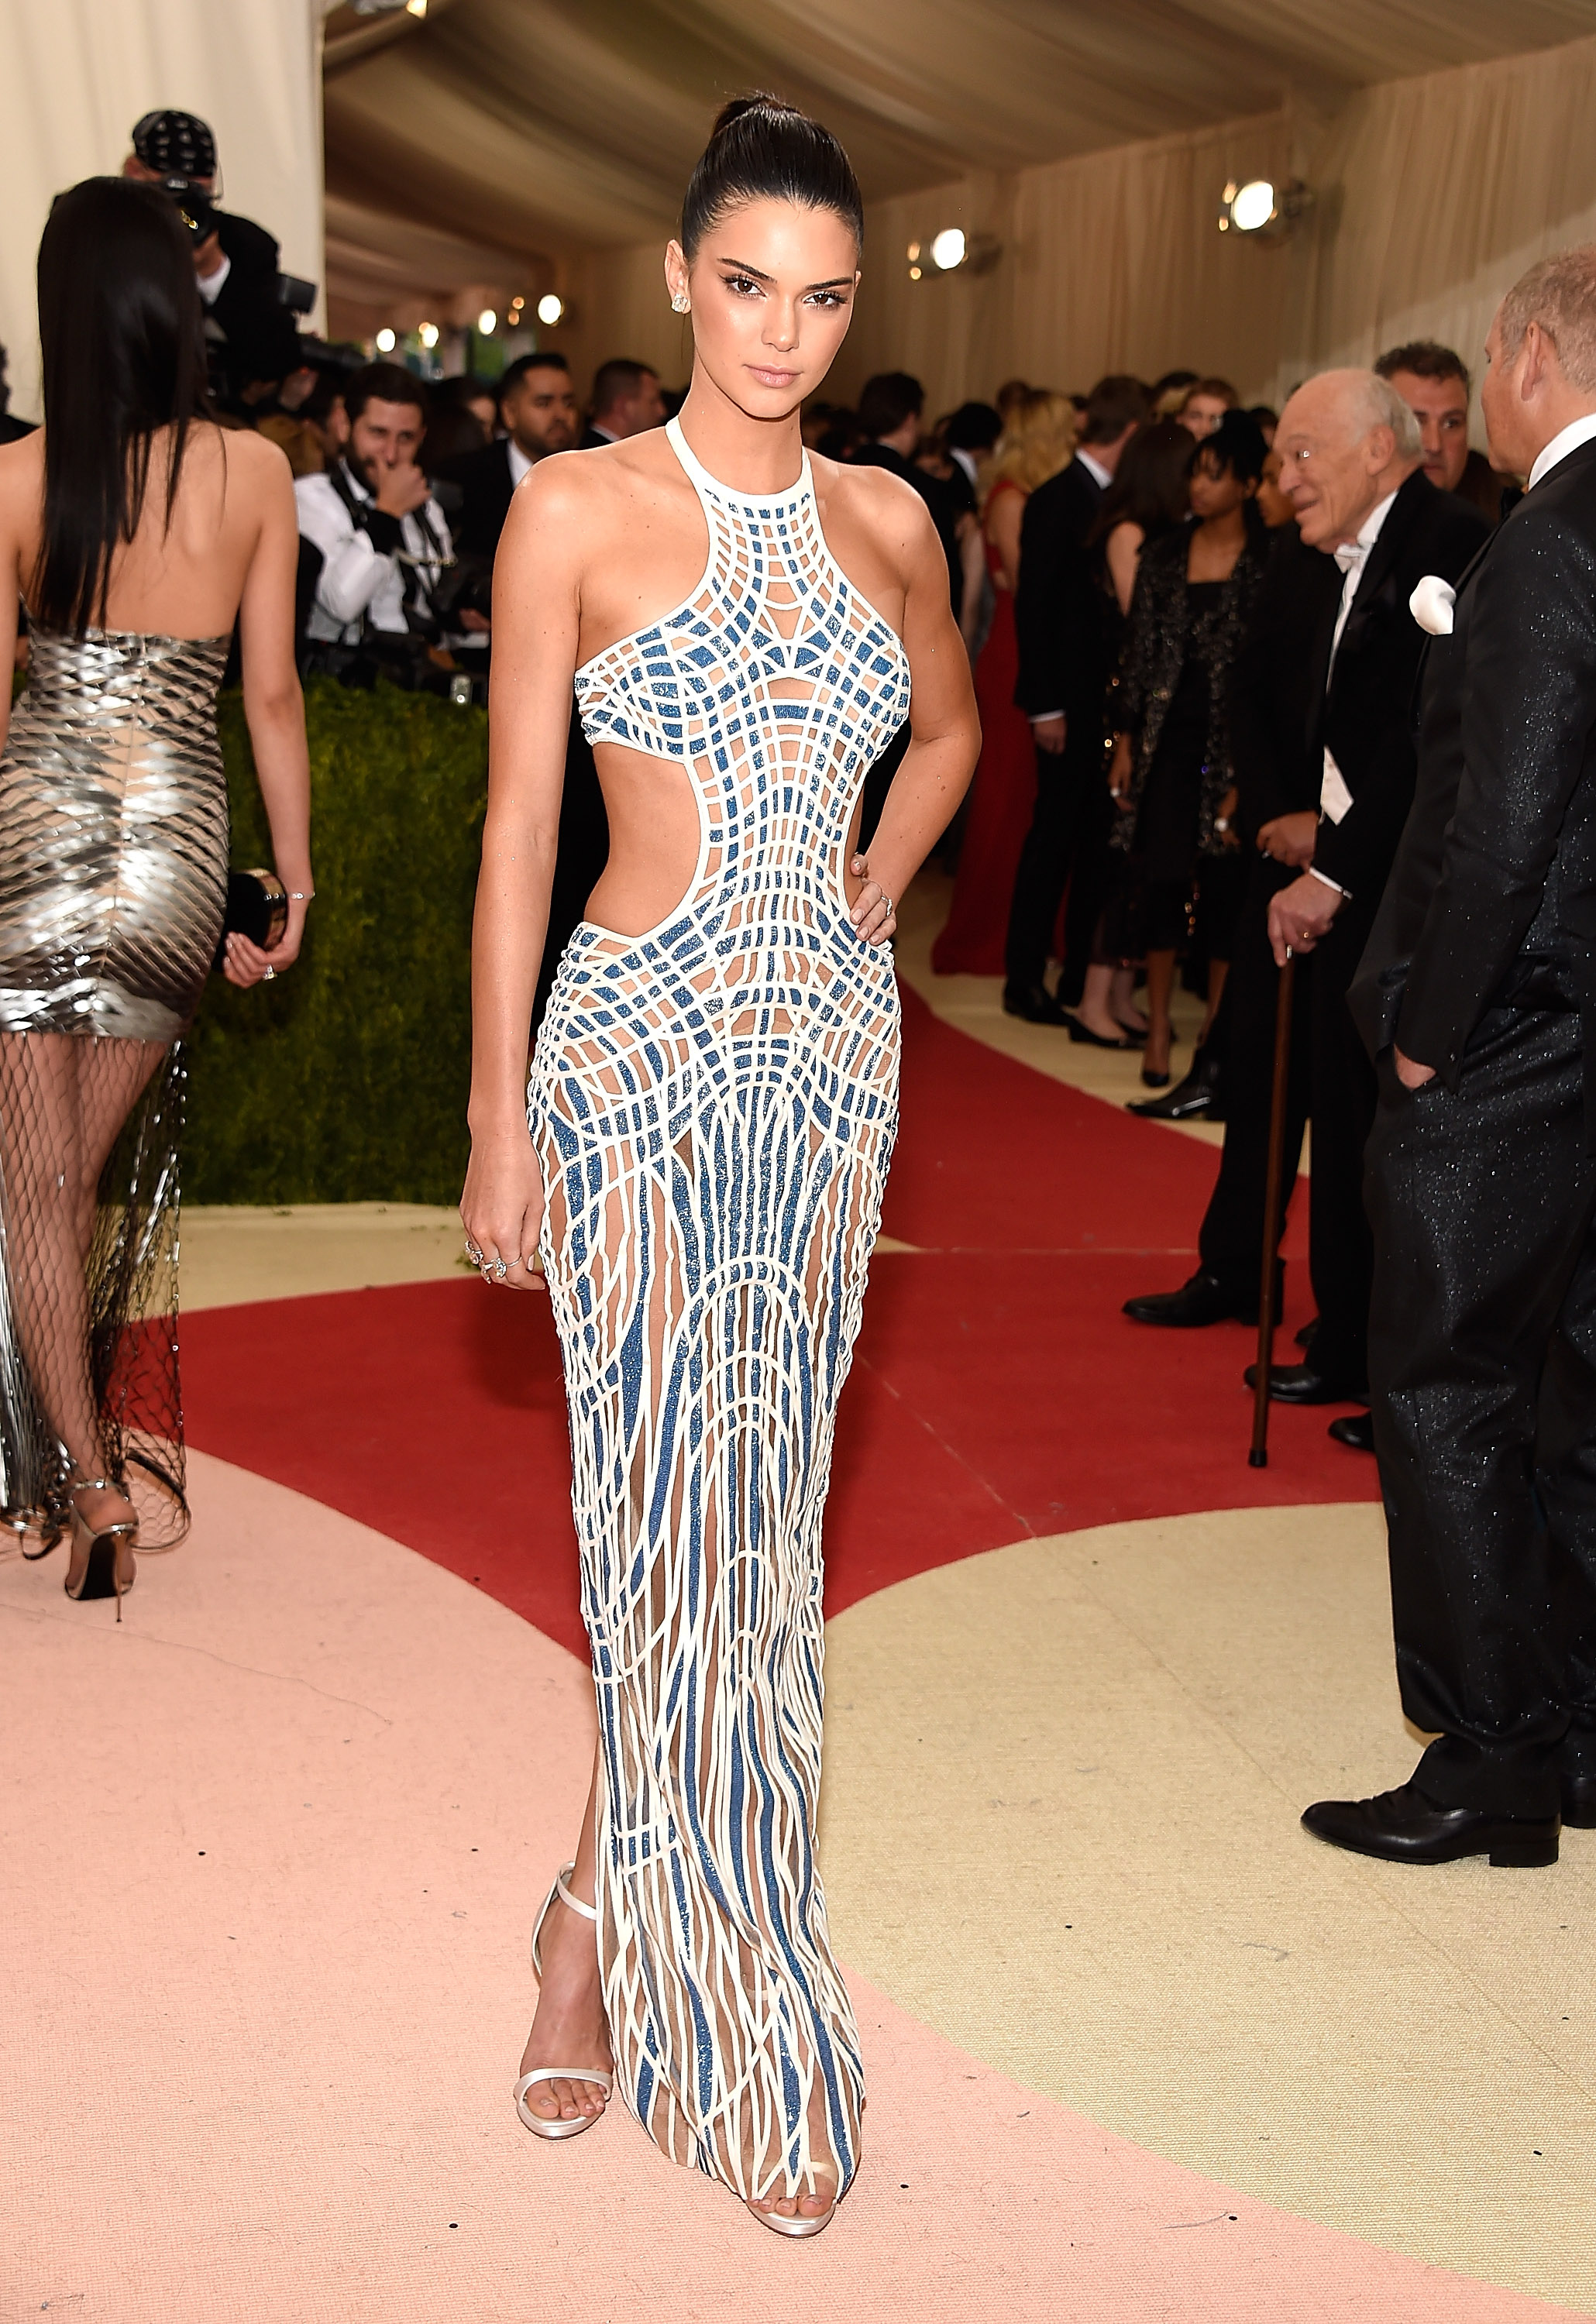 Kendall Jenner attends  Manus x Machina: Fashion In An Age Of Technology  Costume Institute Gala at Metropolitan Museum of Art on May 2, 2016 in New York City.